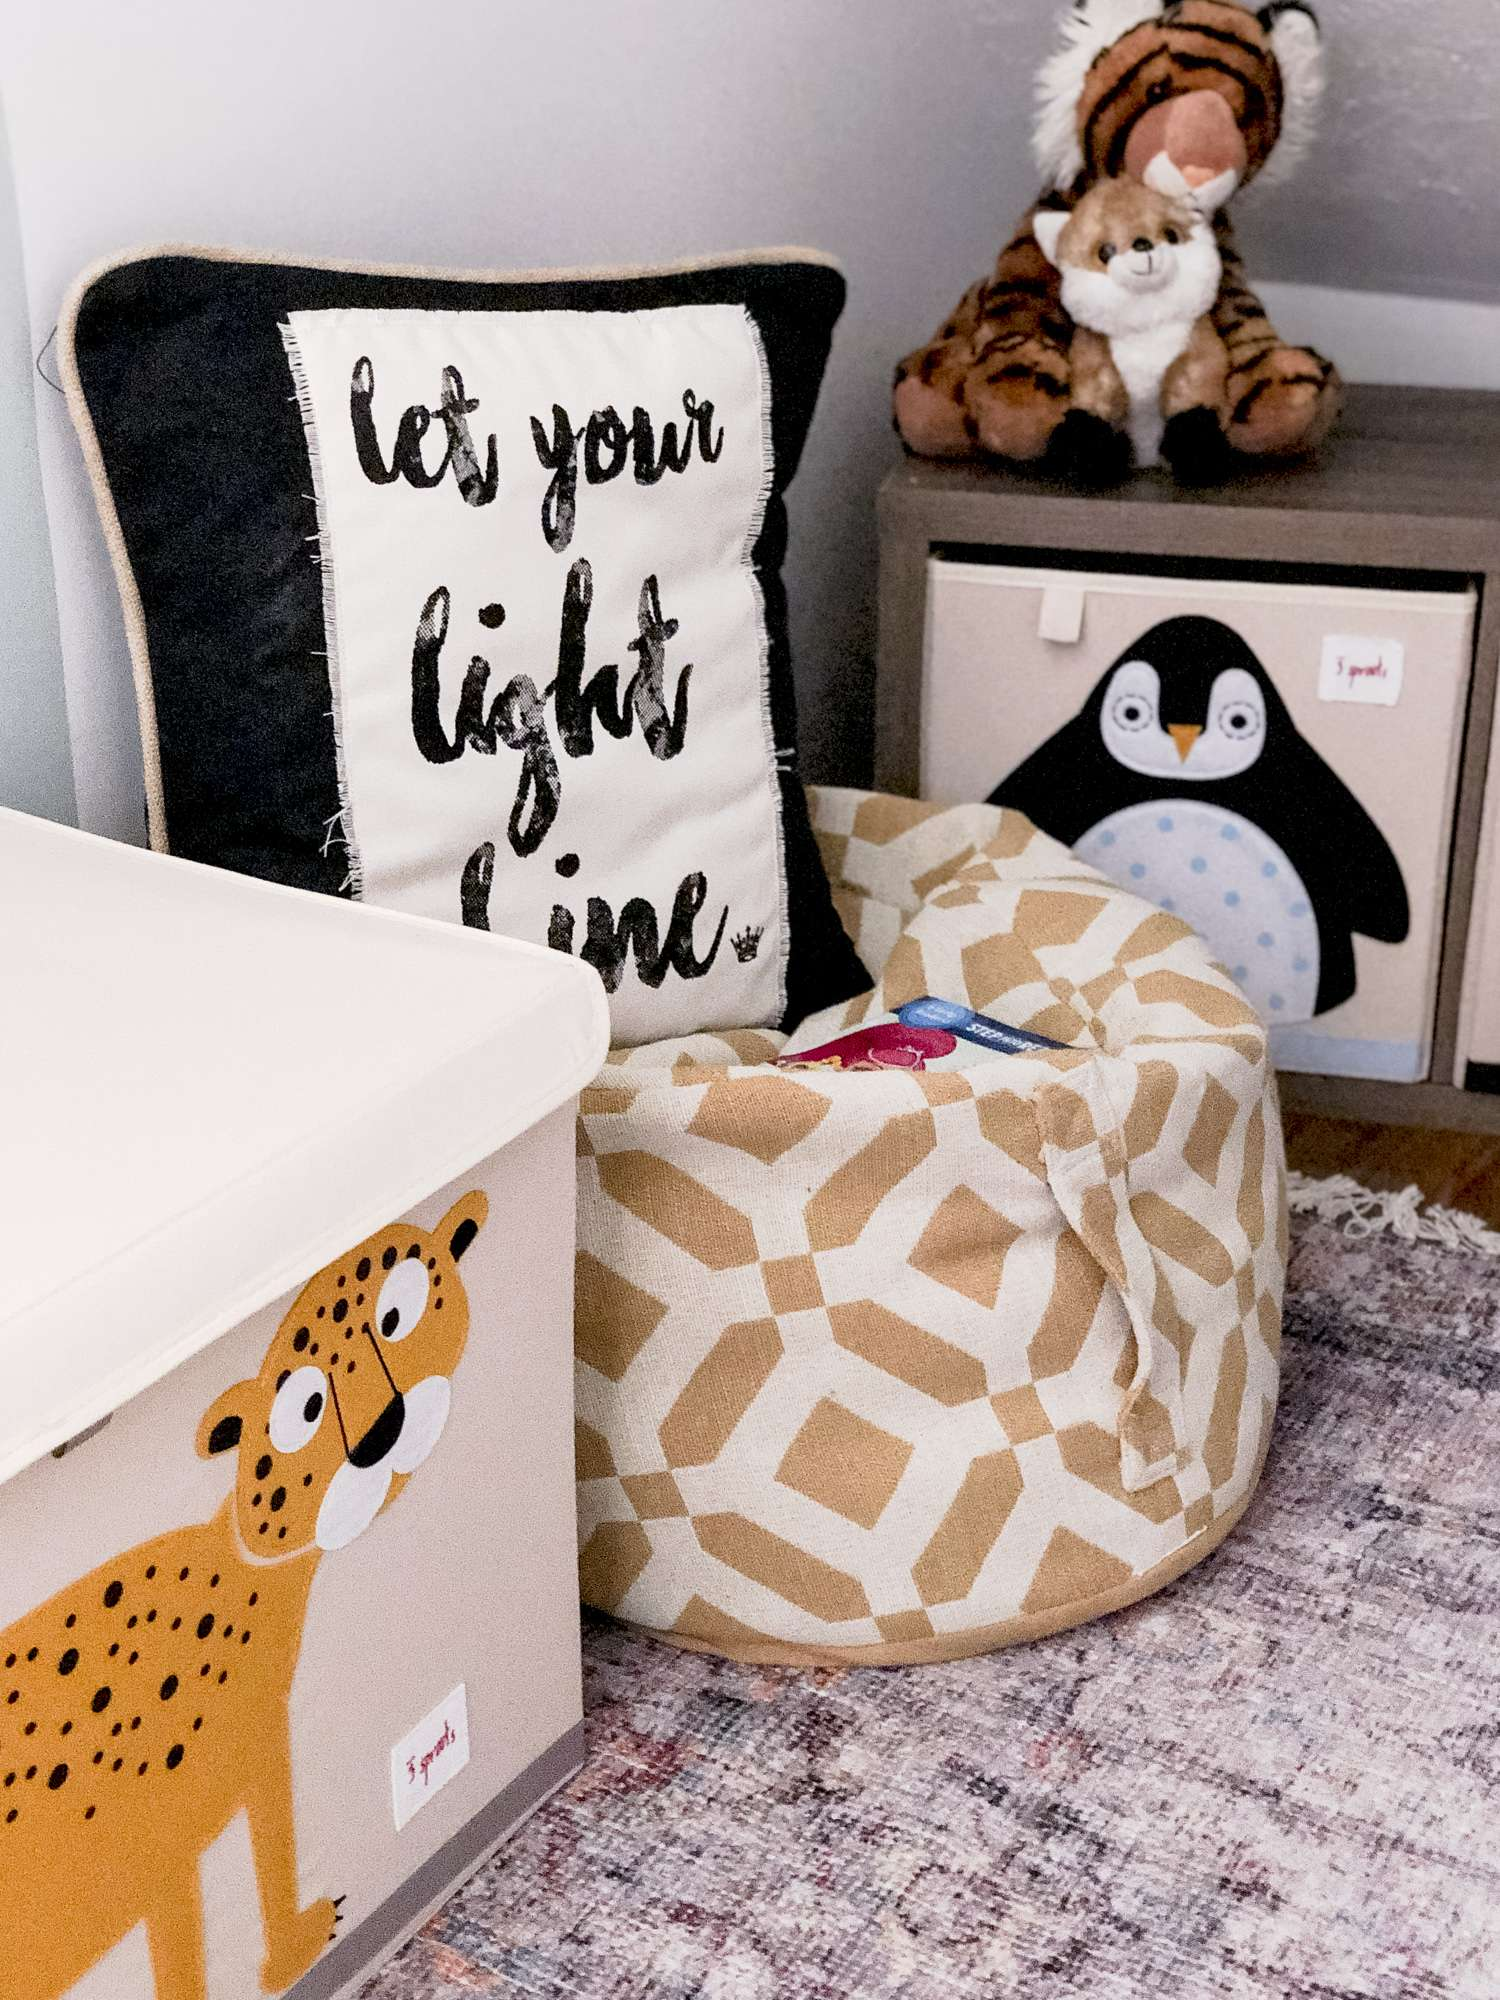 Playroom ideas for comfort and organization.